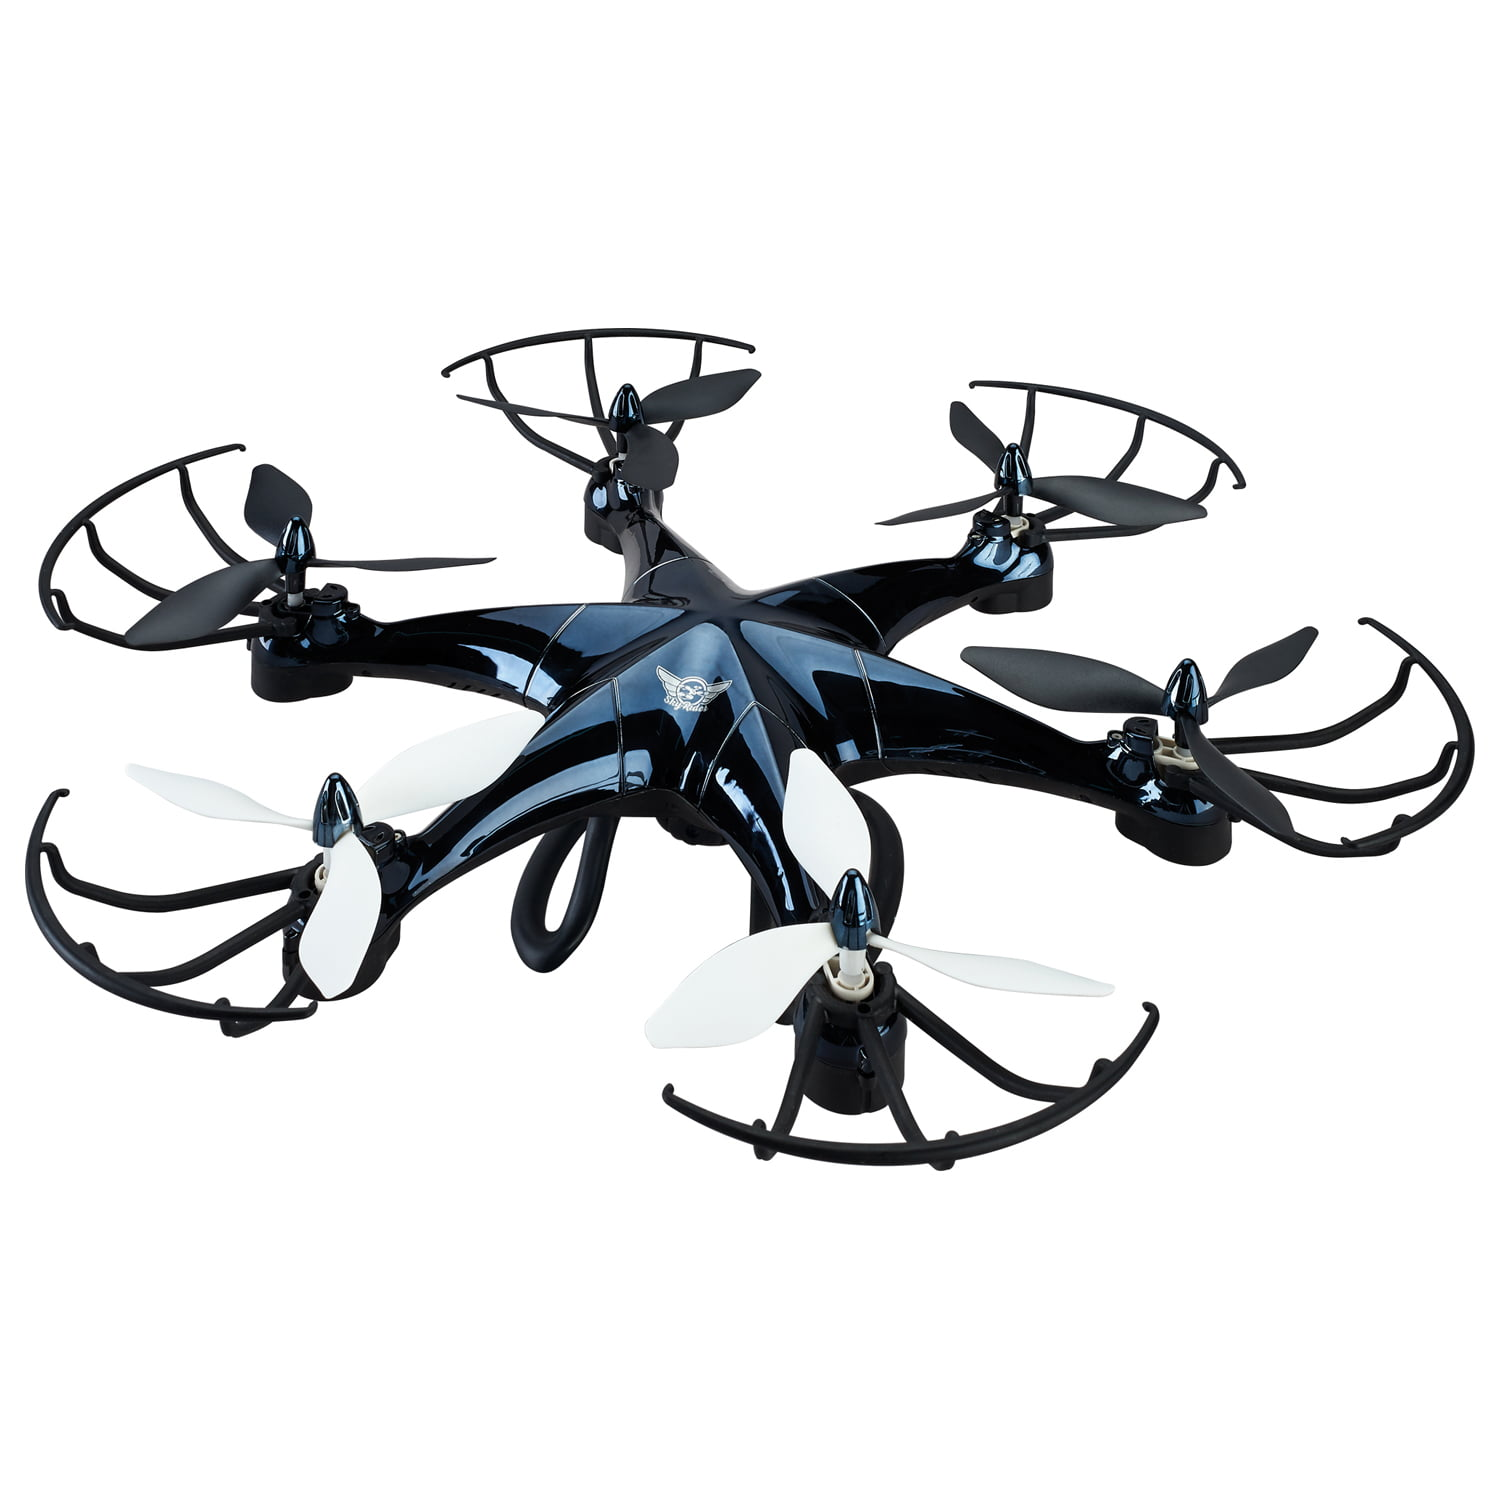 Sky Rider Eagle Pro 6 Rotor Drone With Wi Fi Camera Drw676b